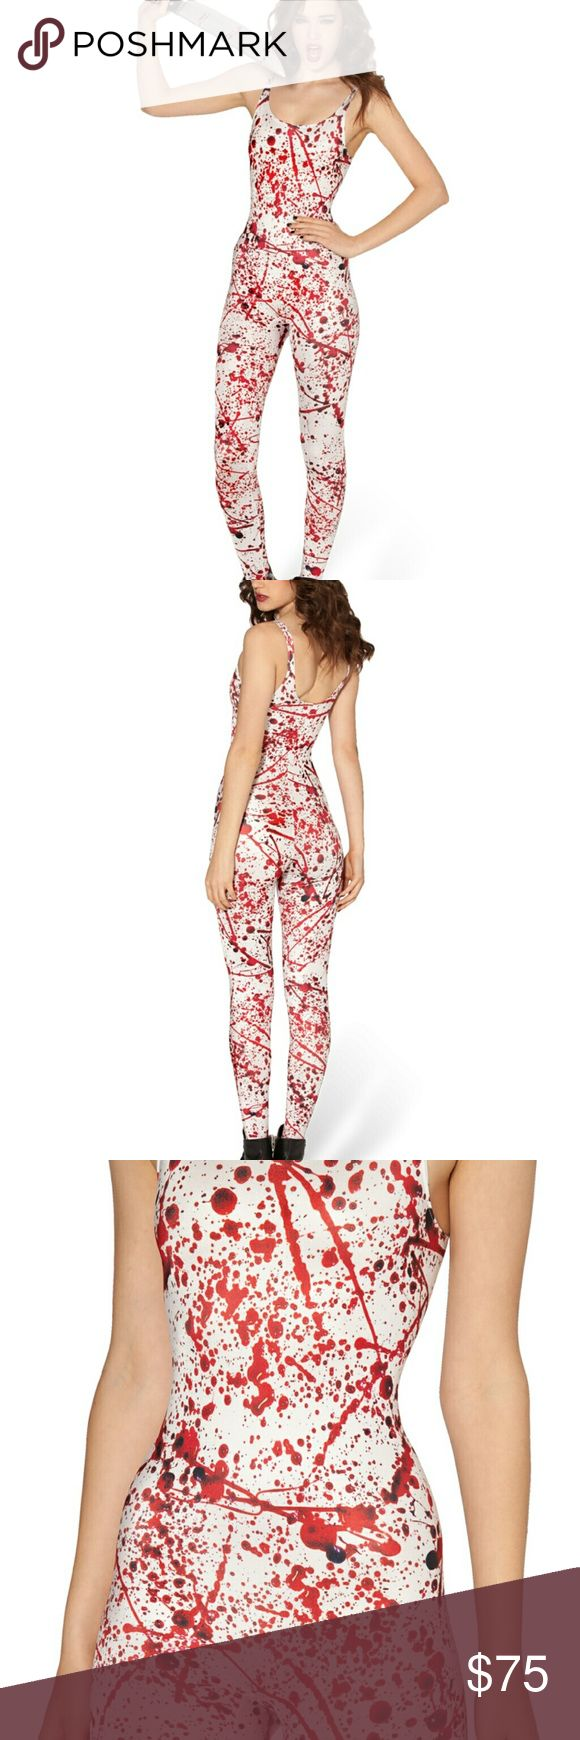 BlackMilk Blood Splatter Cat Suit - XL For those who can appreciate the trajectory of a blood splatter.  Composition:  83% Polyester Bright, 17% Spandex Washing: Please hand wash cool. Made in: Australia   SOLD OUT/MUSEUM NOT AVAILABLE Blackmilk Pants Jumpsuits & Rompers